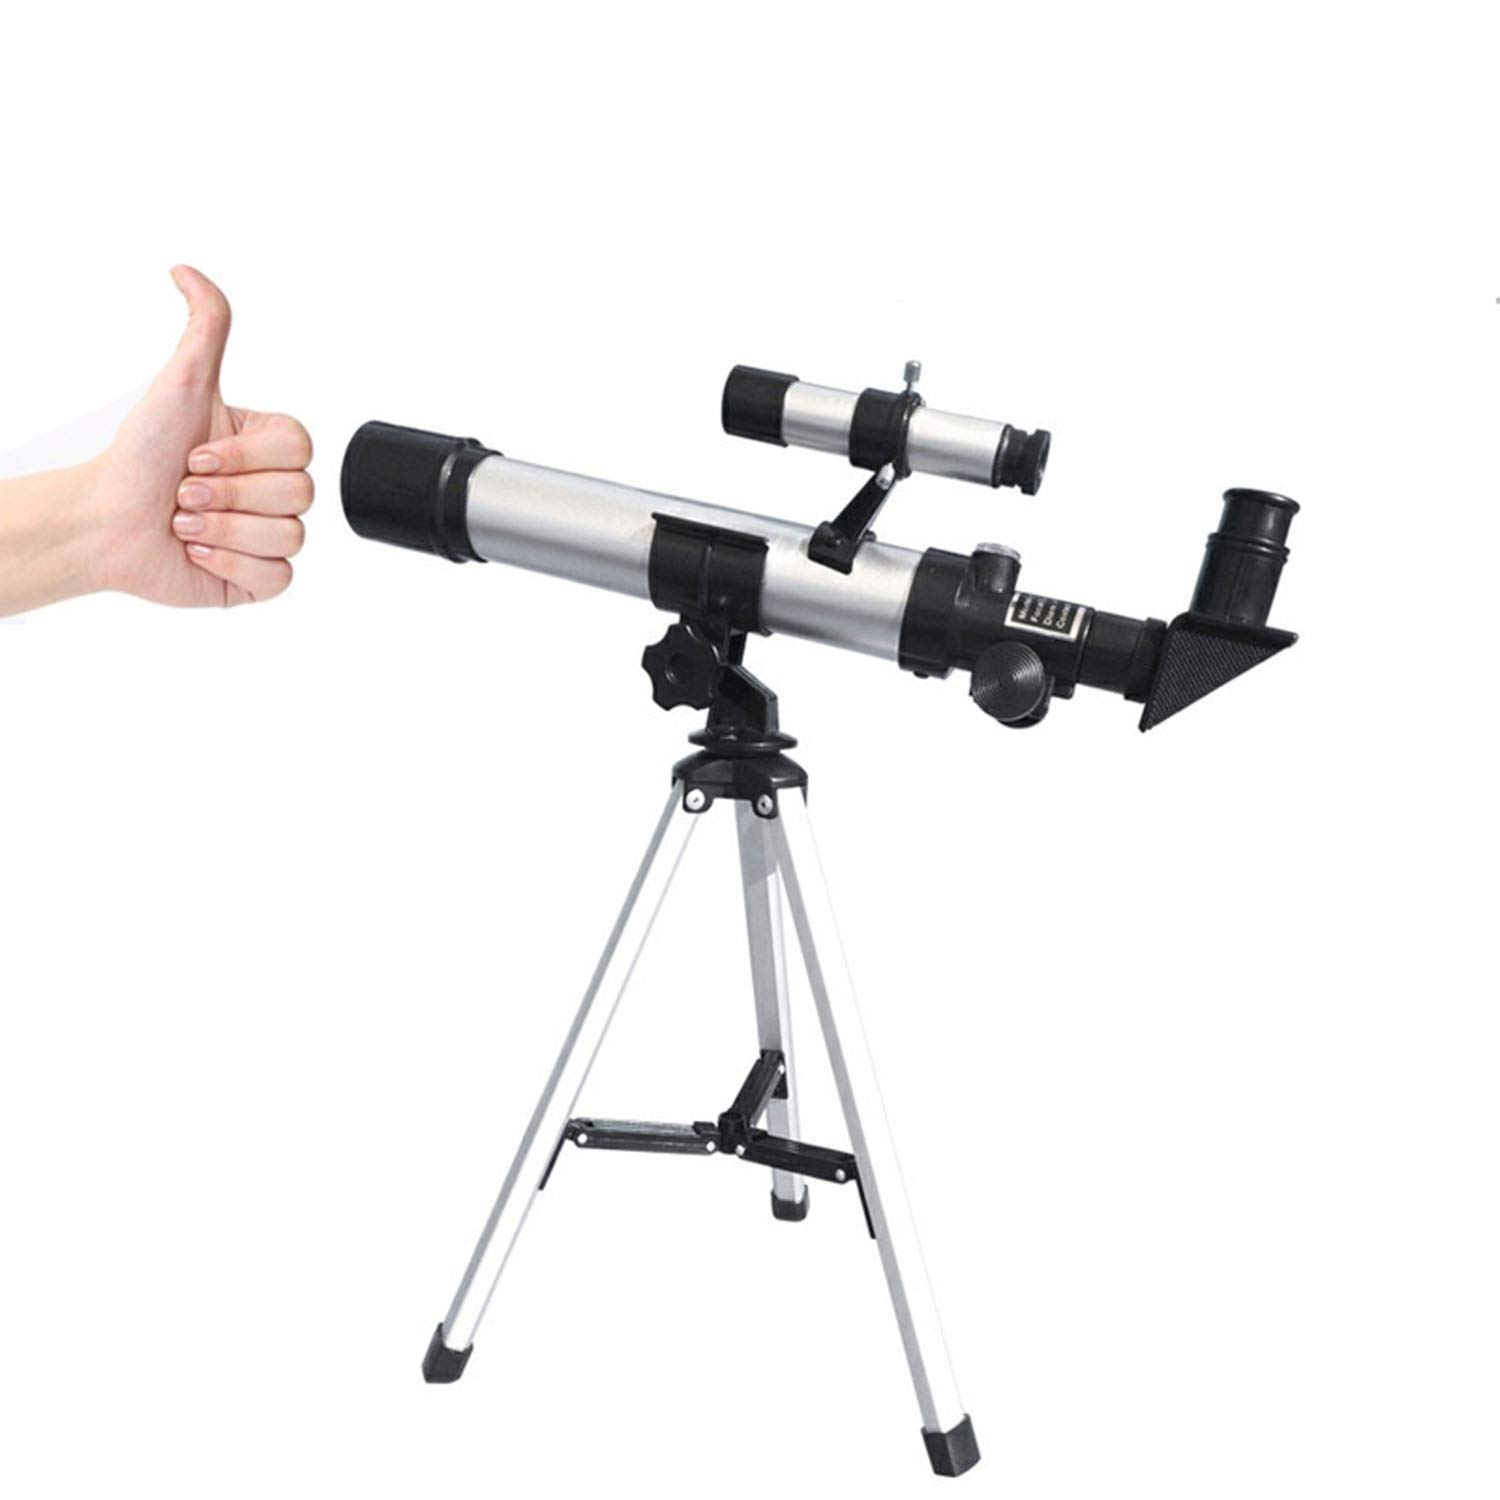 YAMADIE Astronomical Telescope 90 Times High Magnification High-Definition Viewing Mirror by YAMADIE